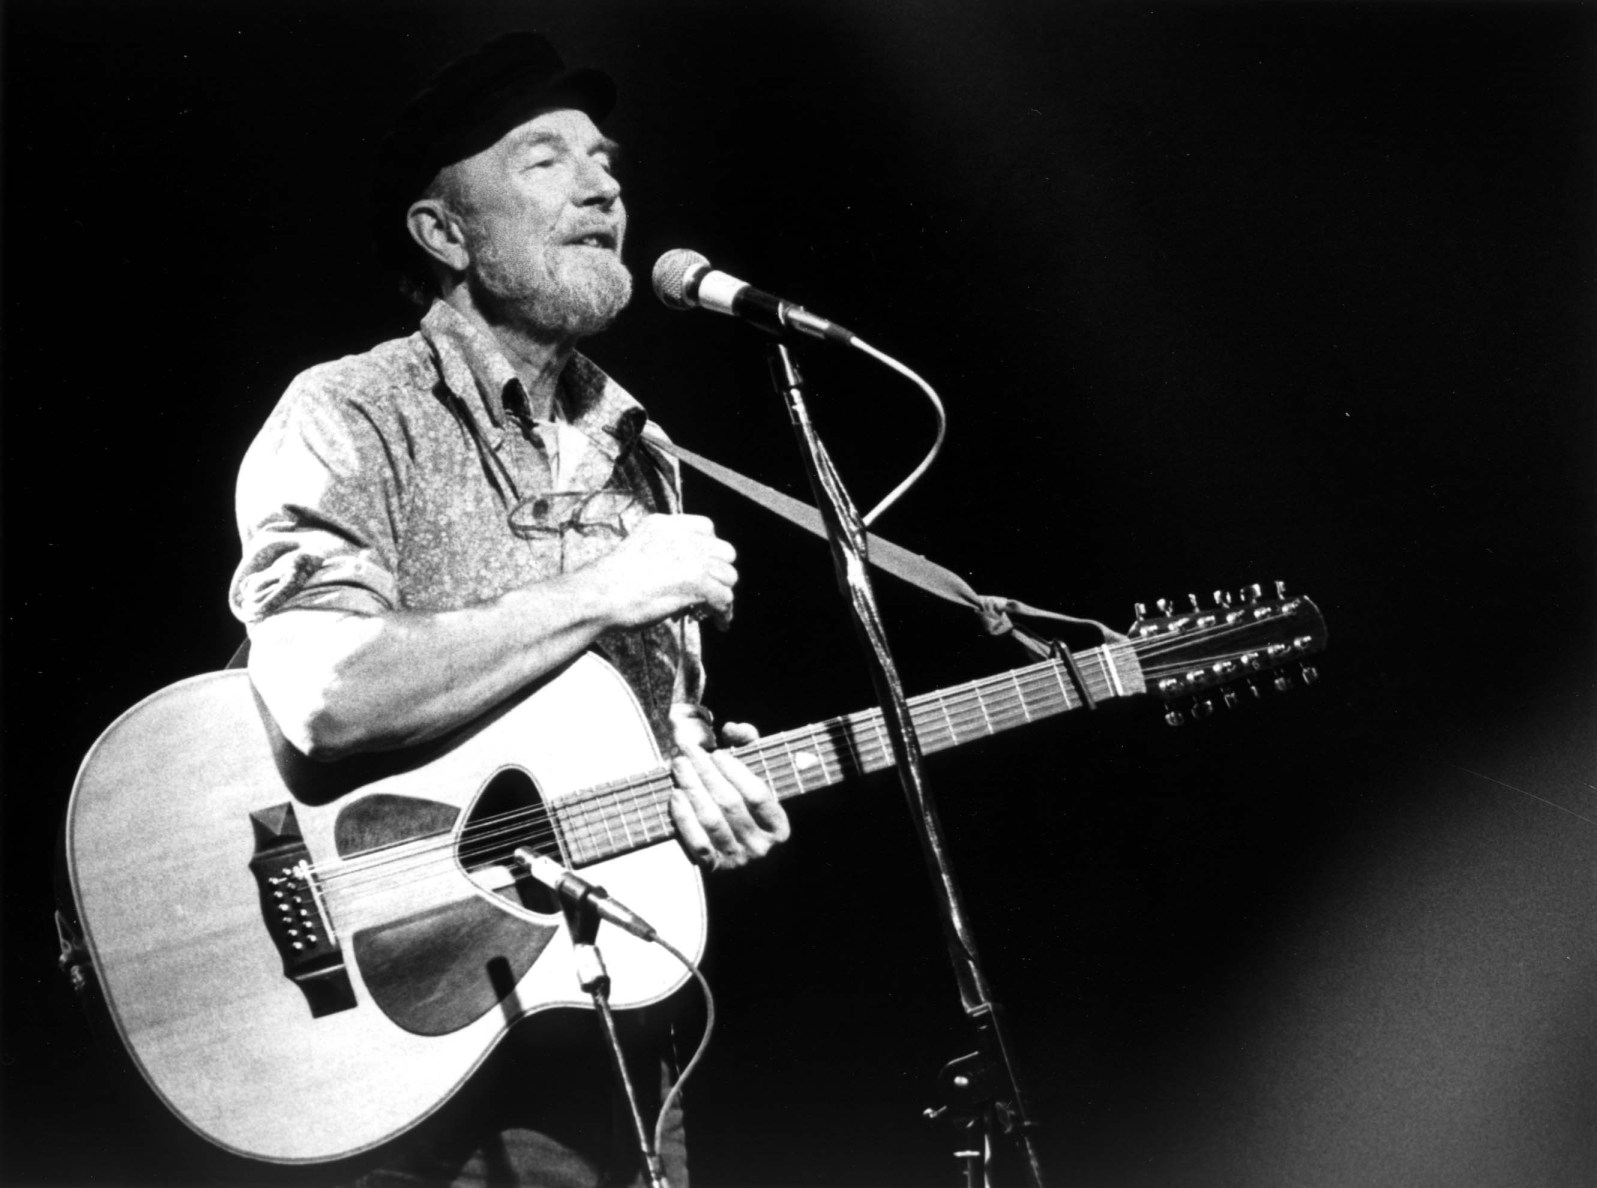 Pete Seeger in concert, 1986.